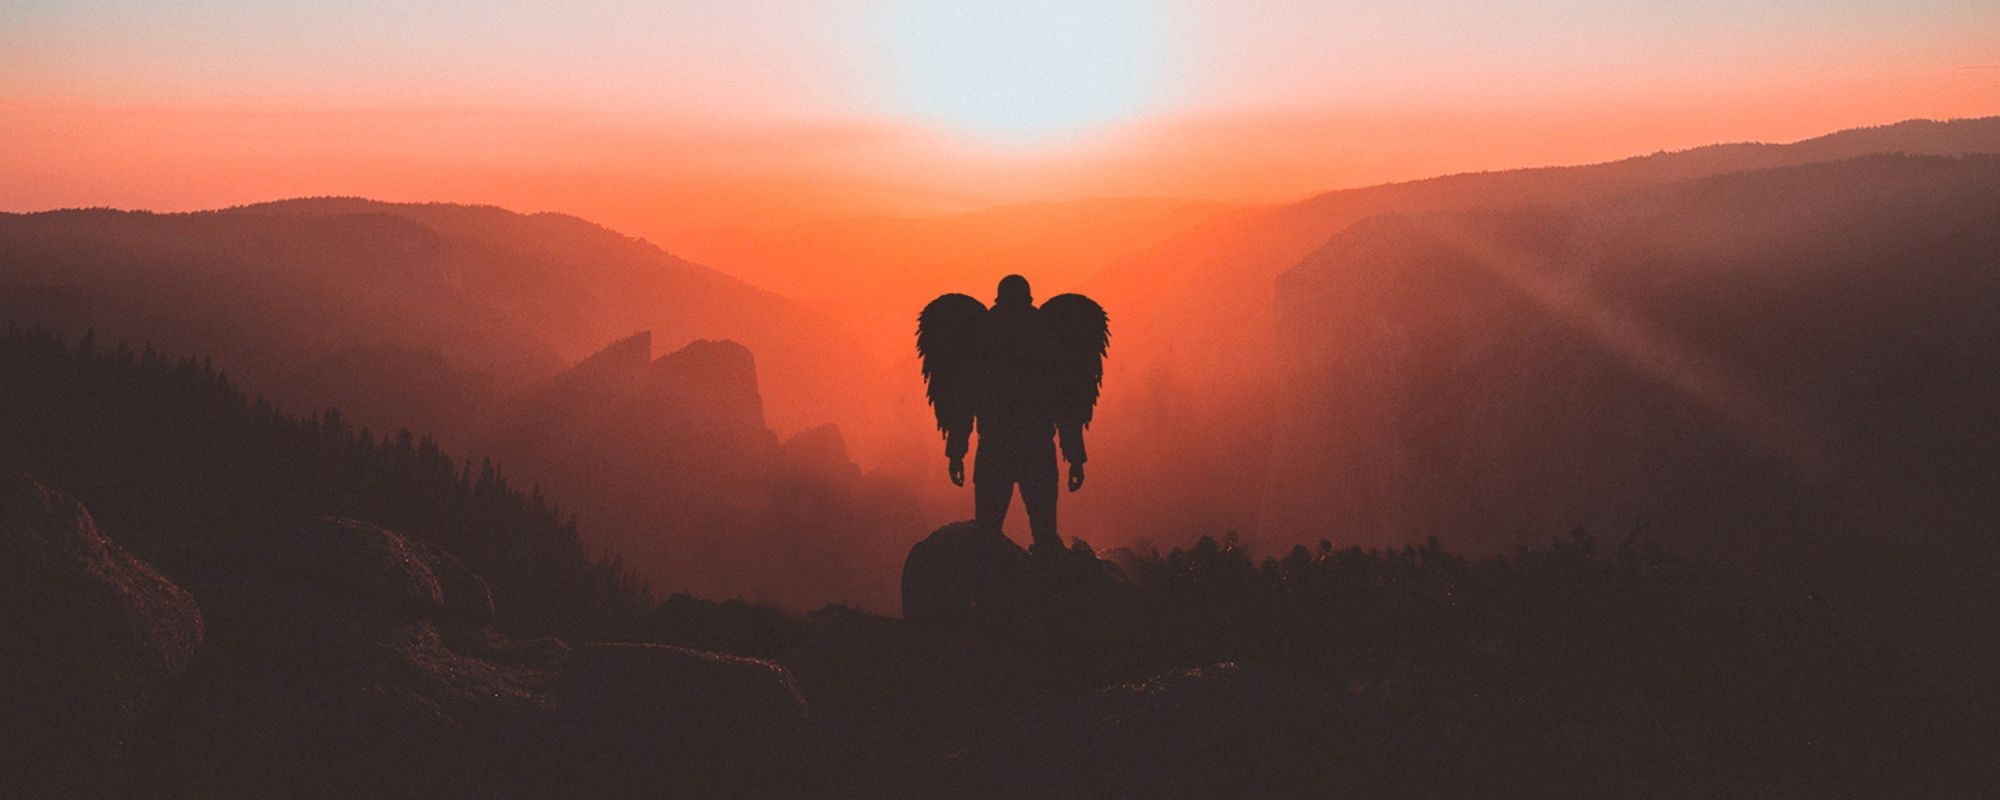 Angel silhouette on top of a cliff, at sunset